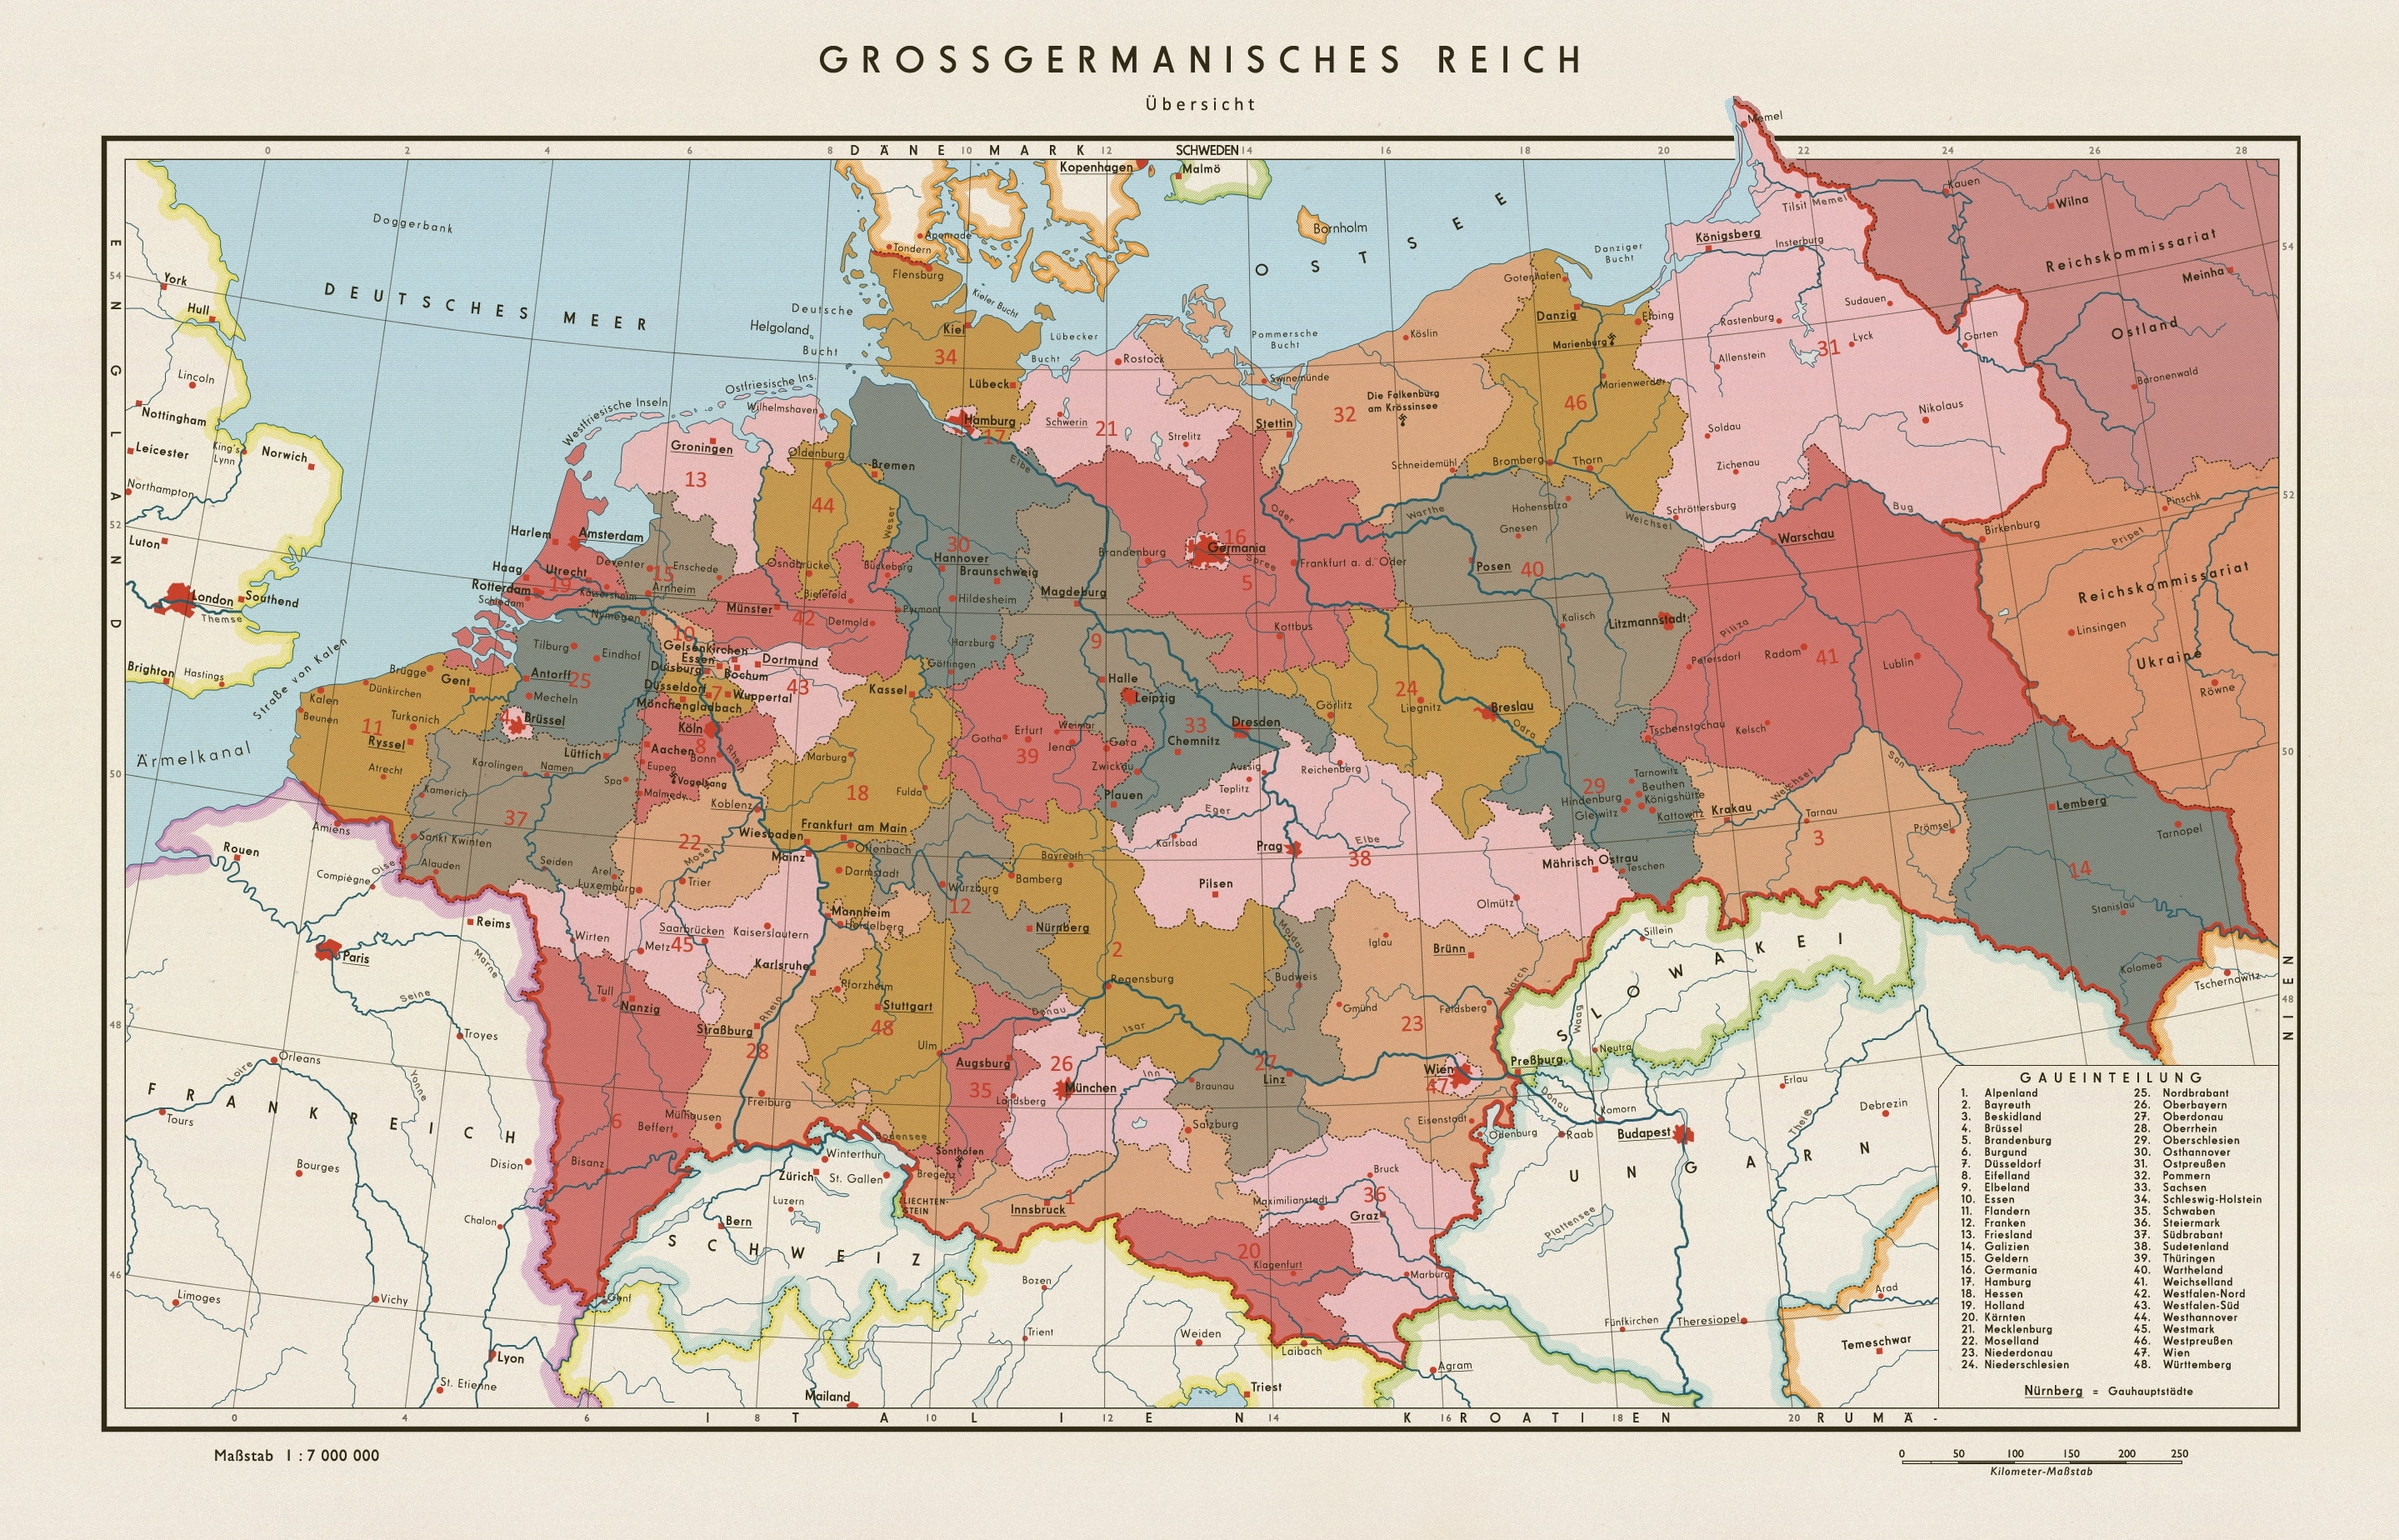 A Map Of Post-World War Ii Germany In A Scenario Where The Nazis Won throughout Map Of Germany After World War Ii